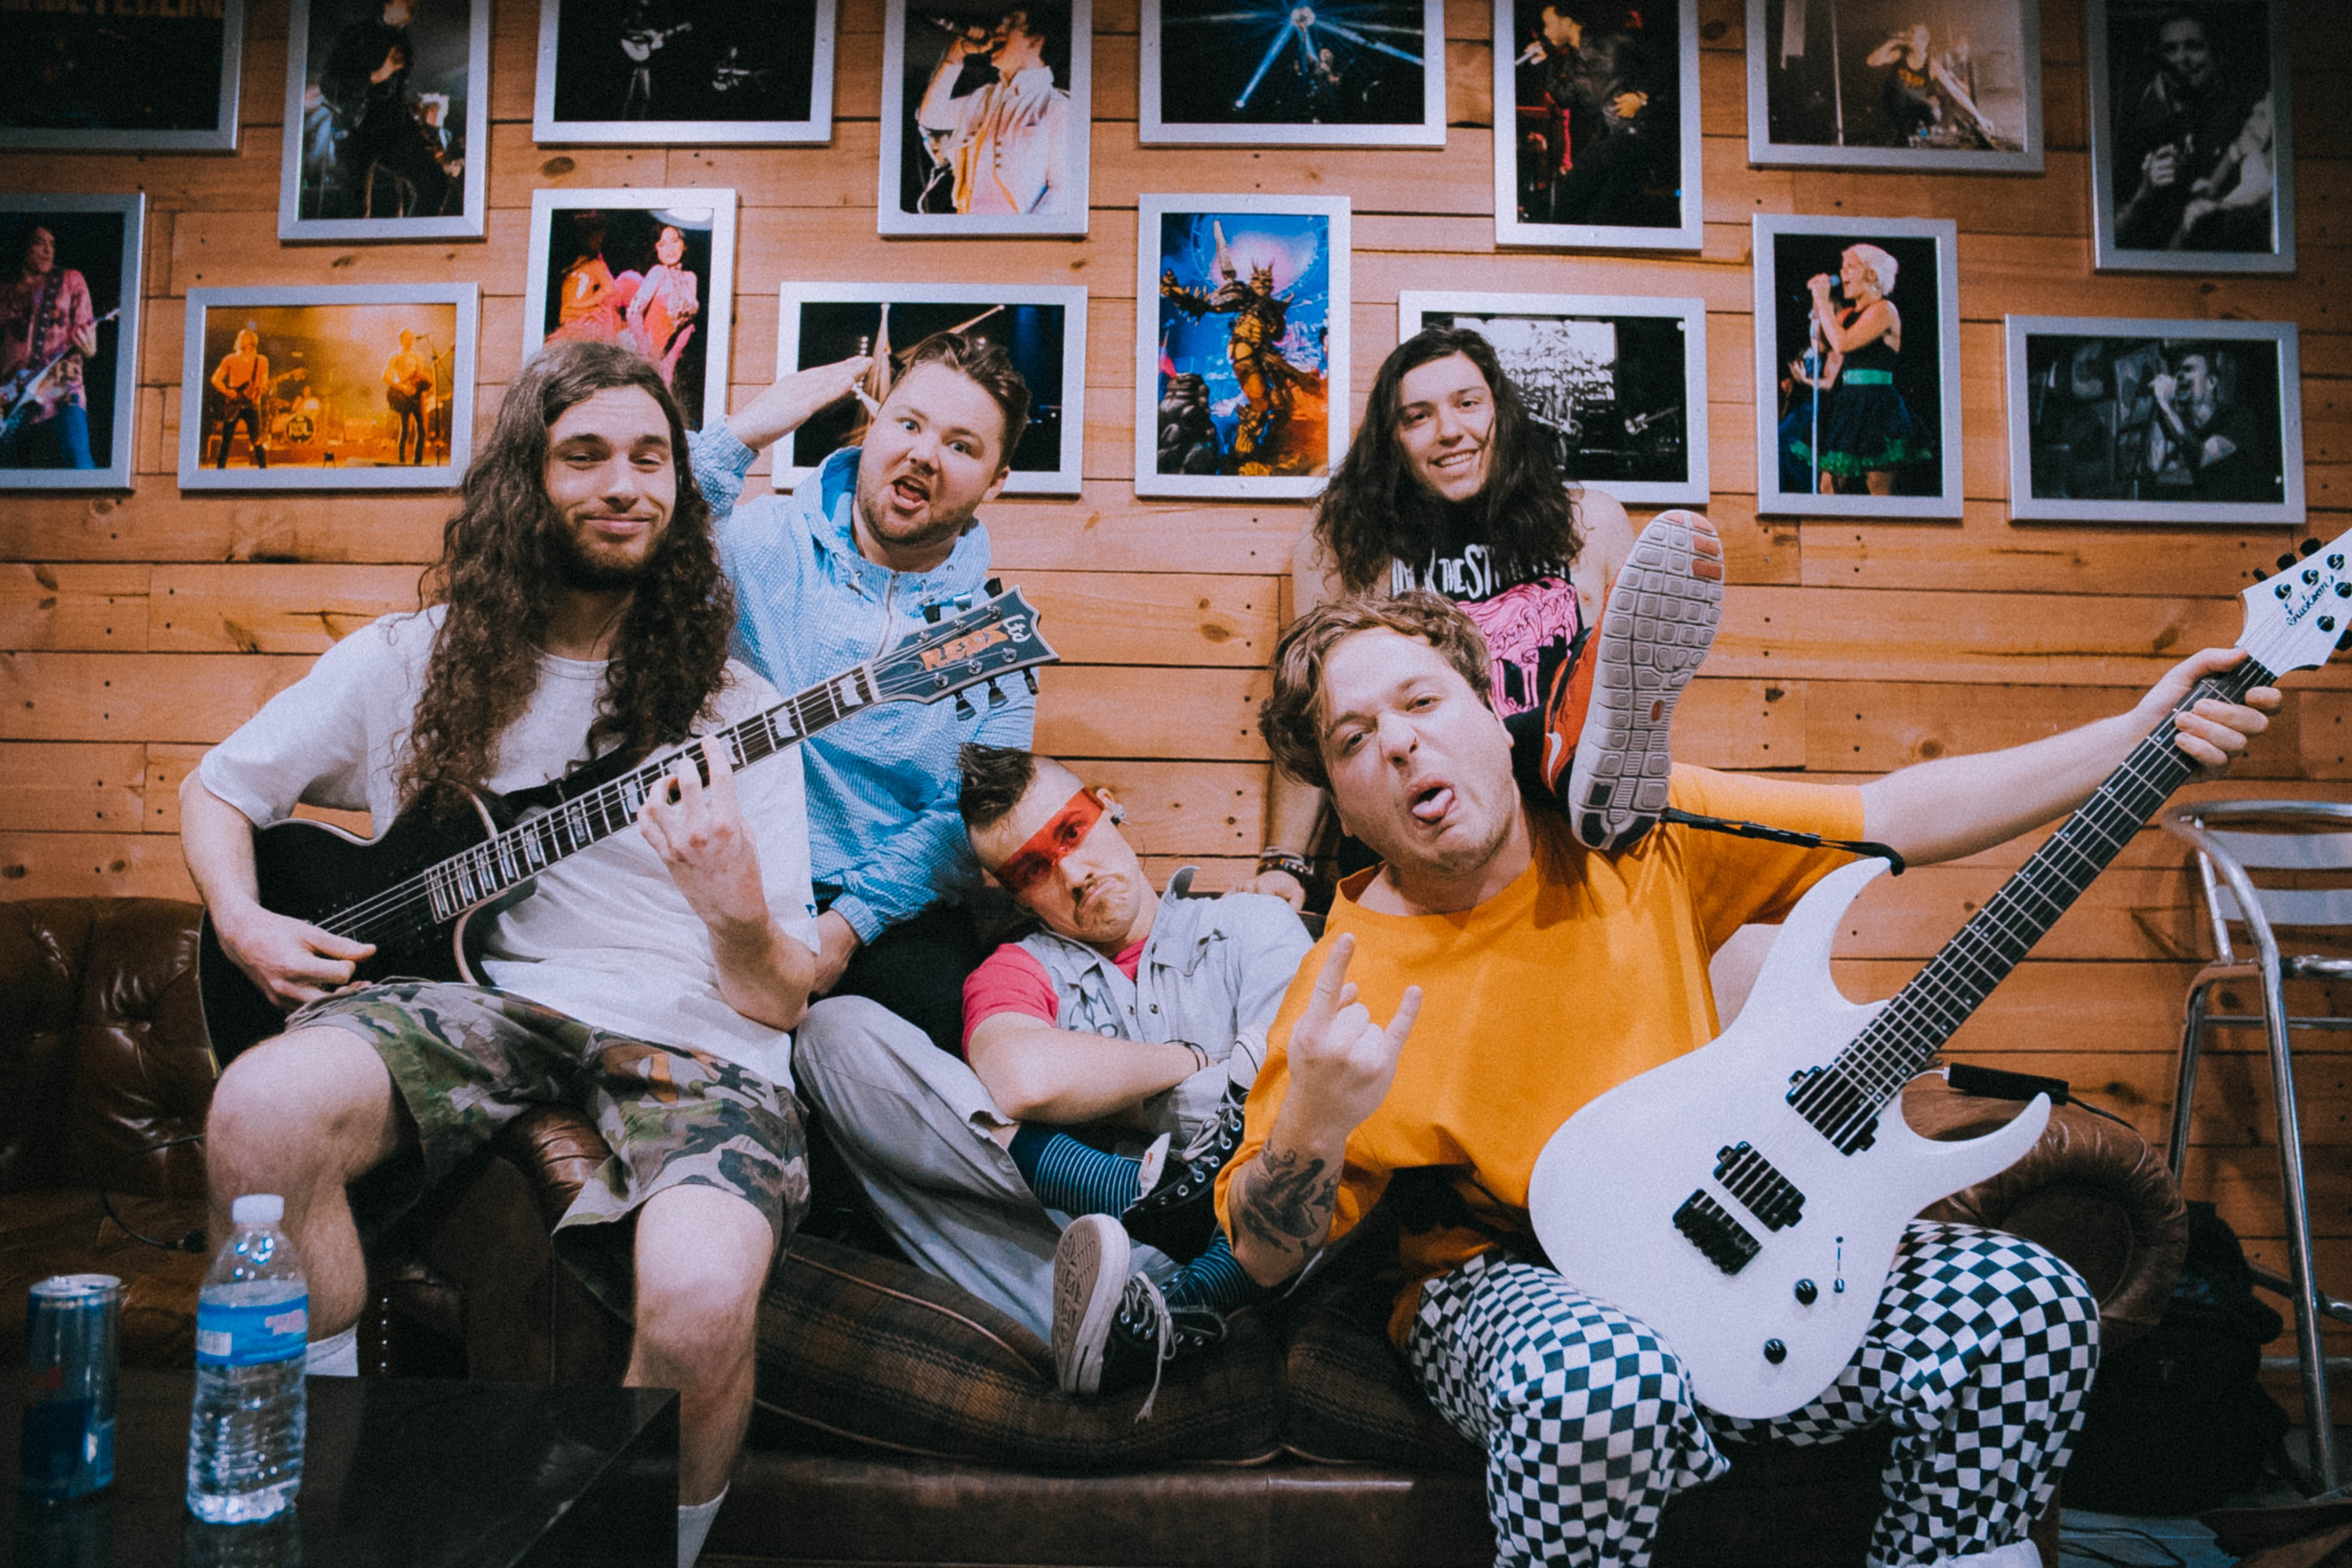 band taking groufie picture on brown sofa